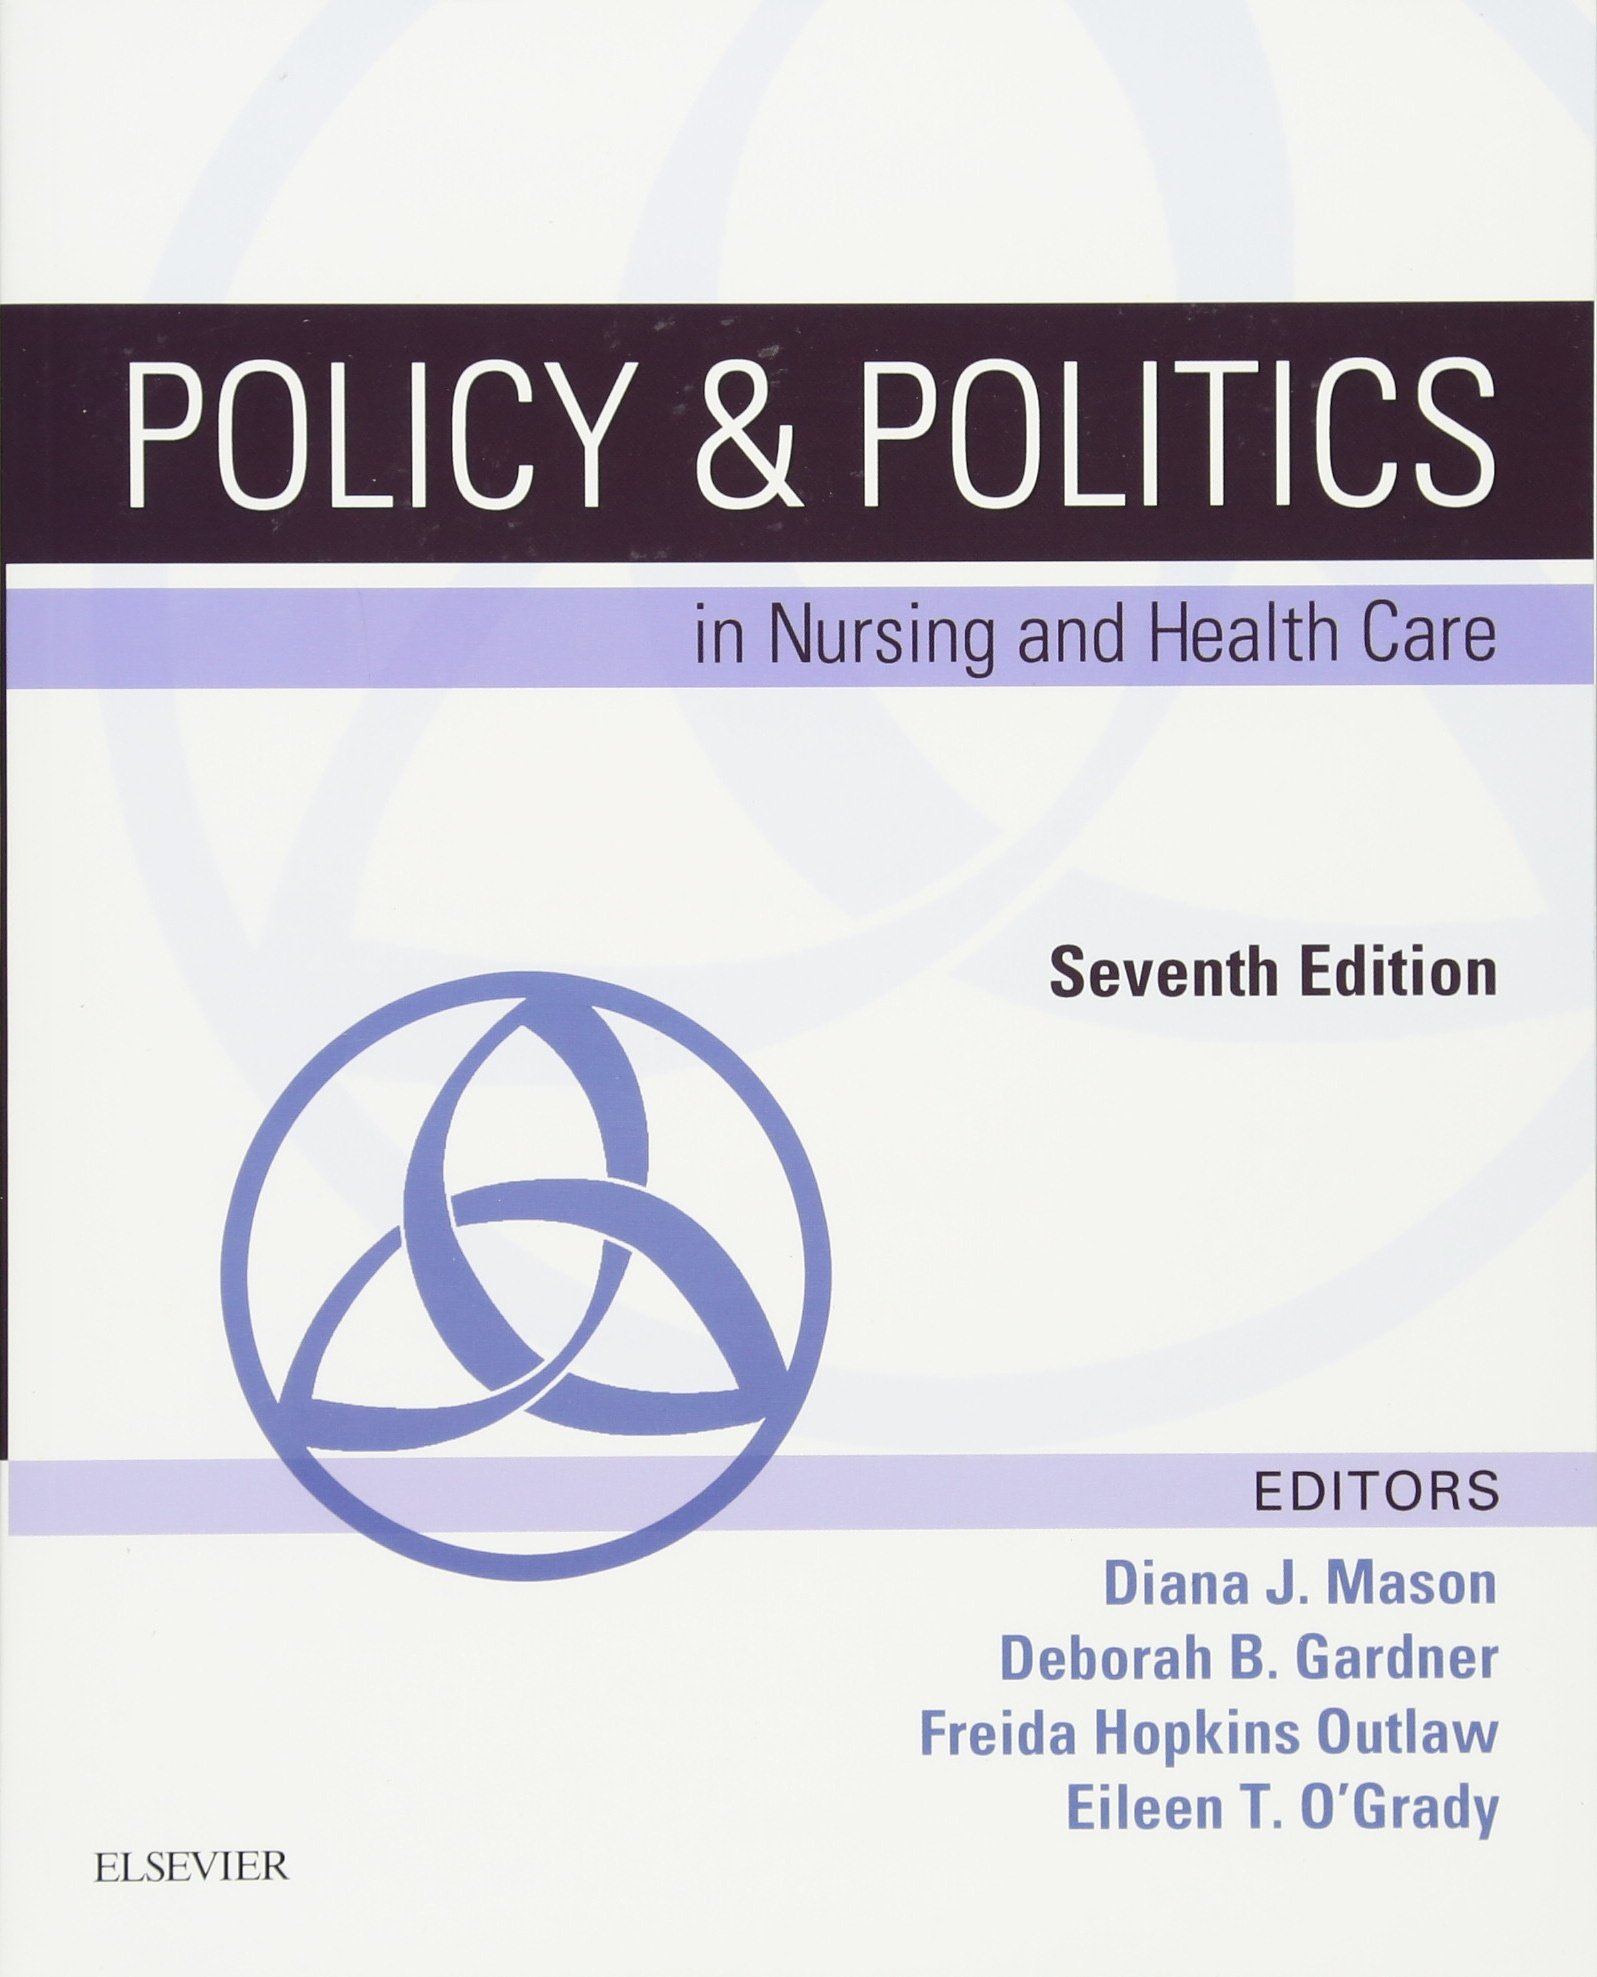 Policy & Politics in Nursing and Health Care (Policy and Politics in Nursing and Health)